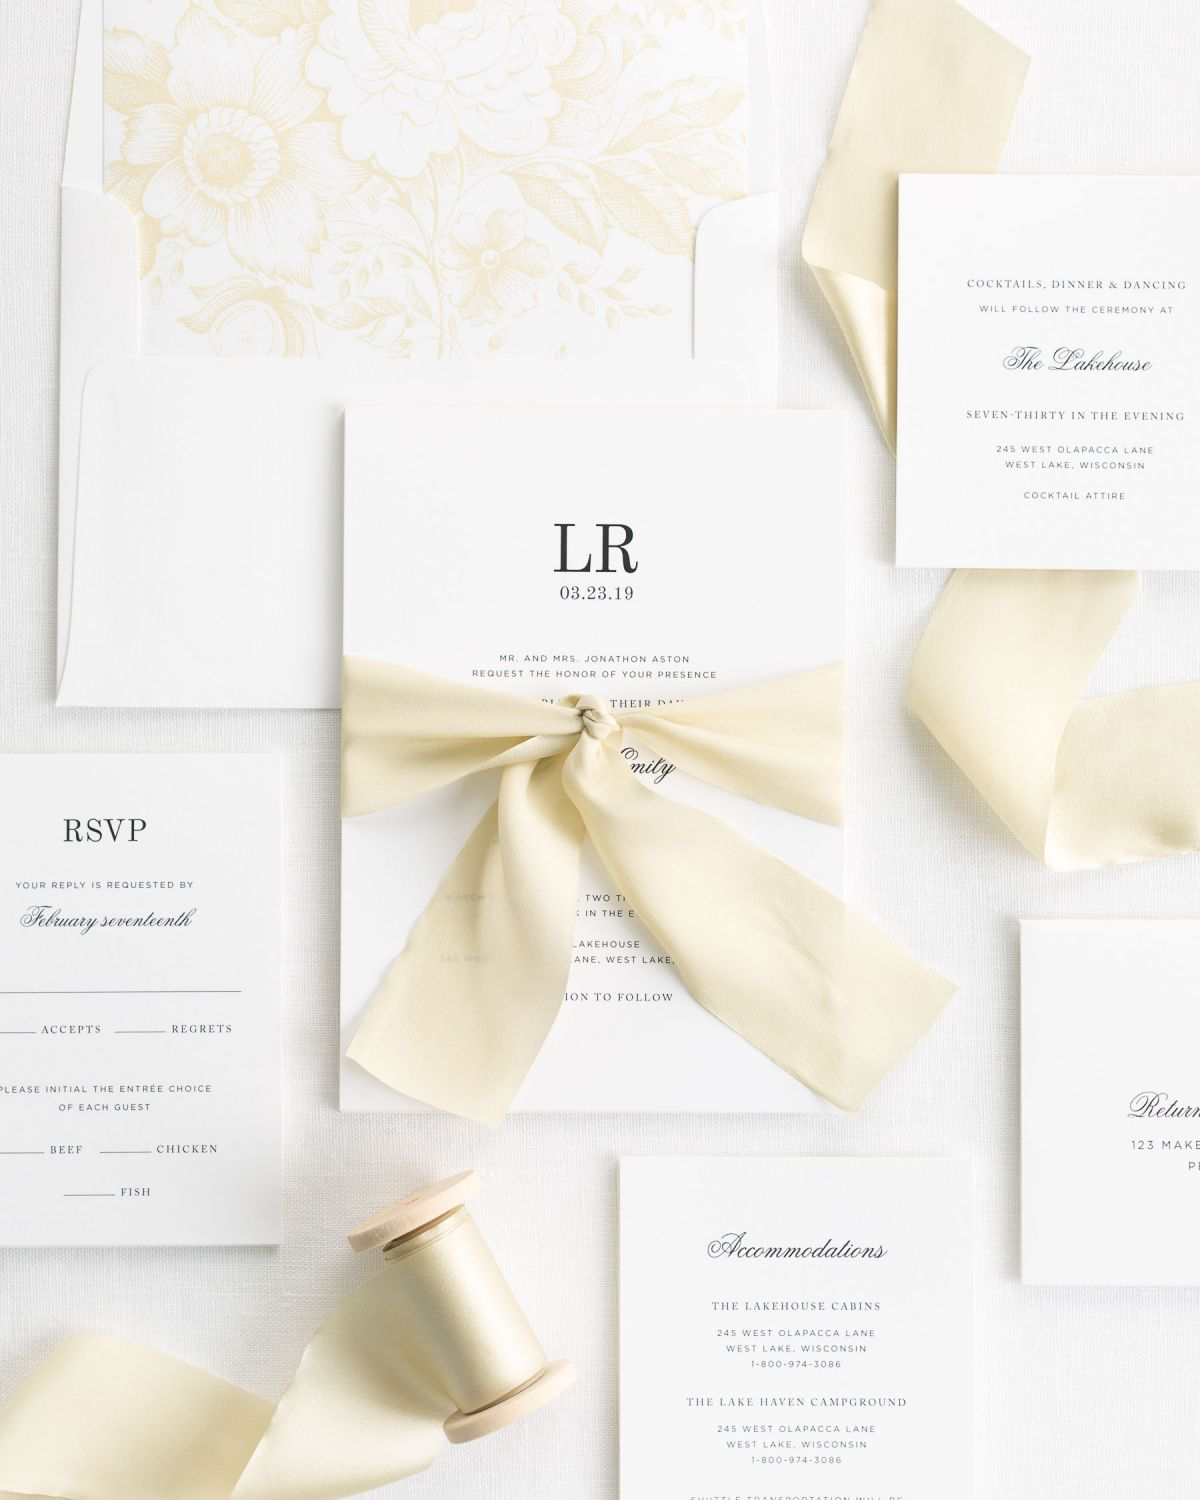 Complete Wedding Invitation Set] with Honey Ribbon and Enclosures